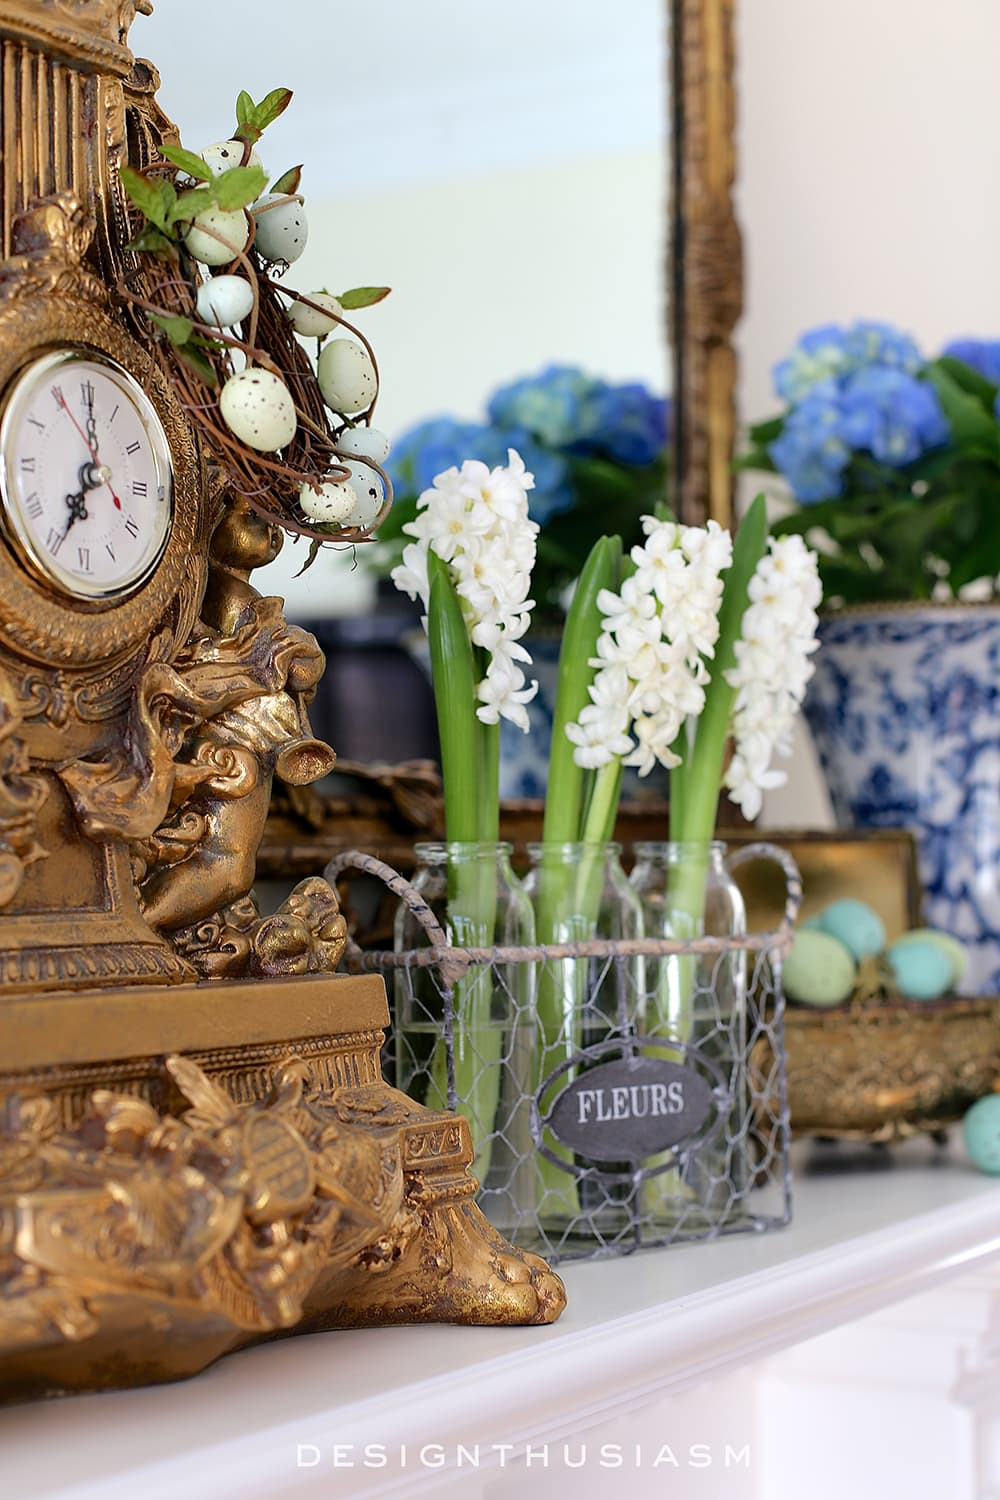 Designthusiasm - Spring Mantel in the Family Room